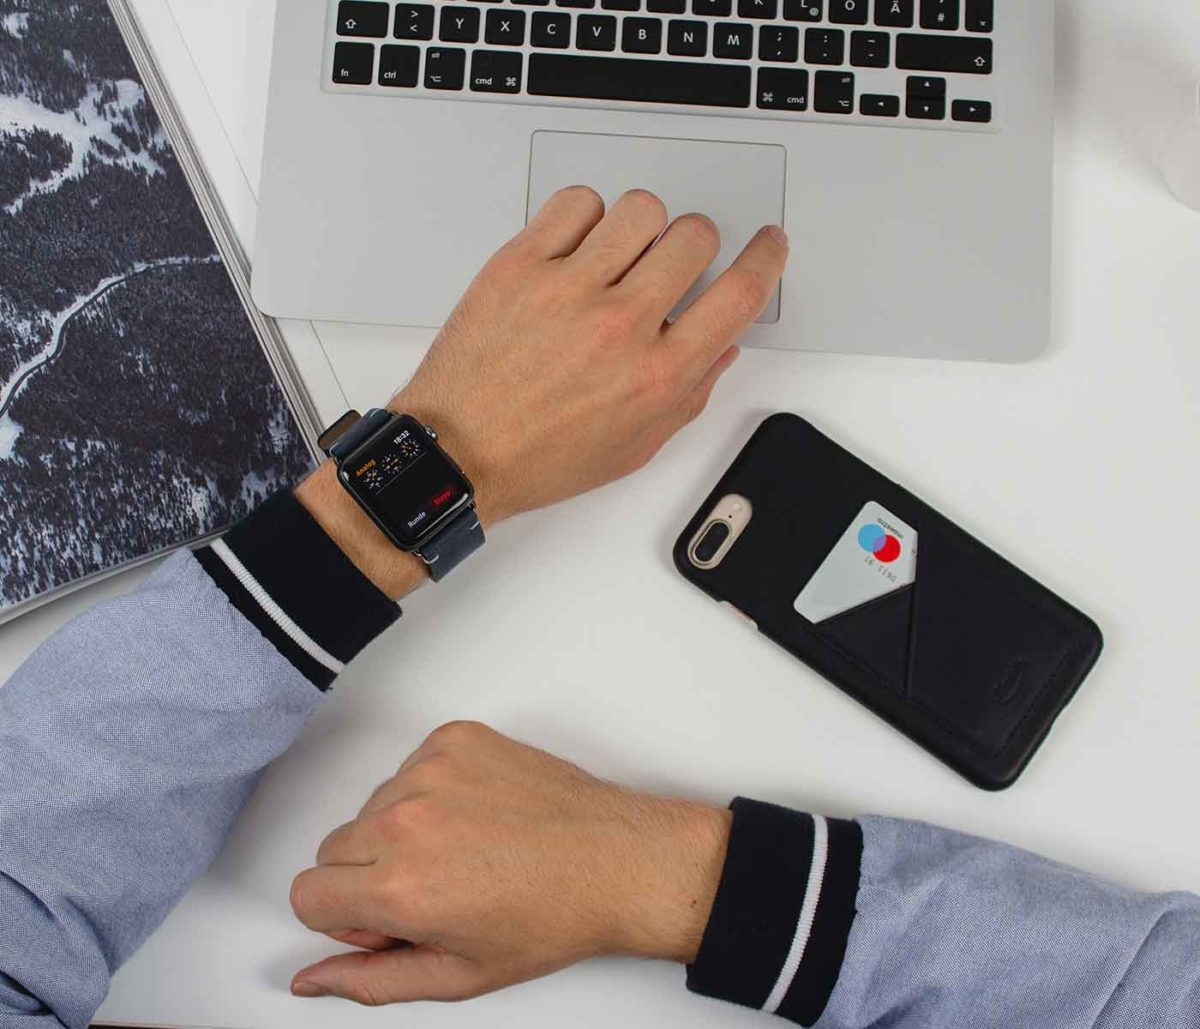 Cosmos+ArcticNight-blue-combo-leather-Apple-accessories-for-him-office-outfit